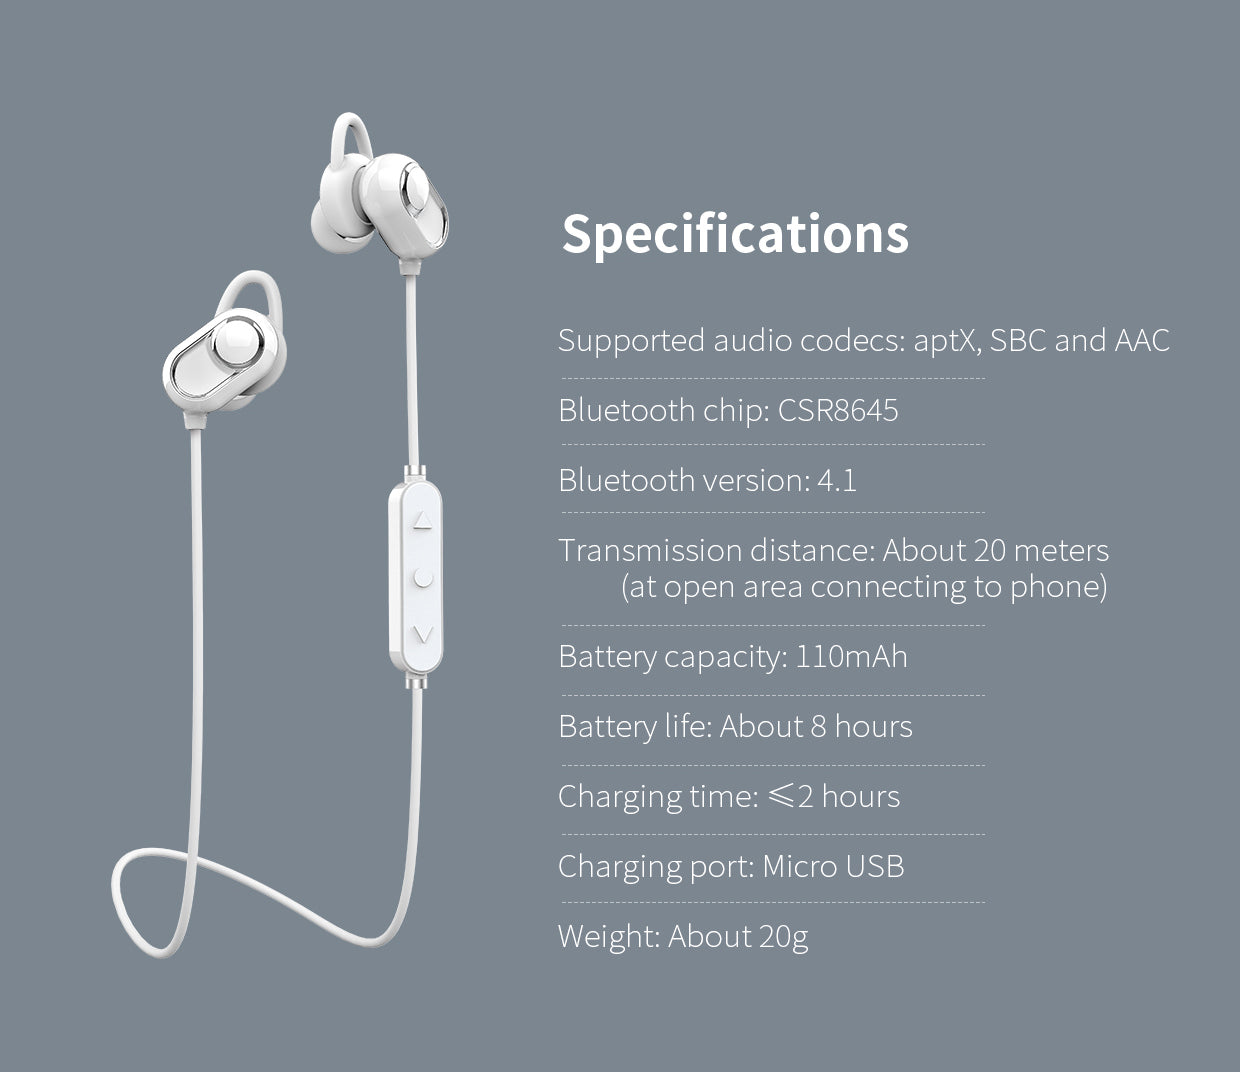 FiiO FB1 Specifications